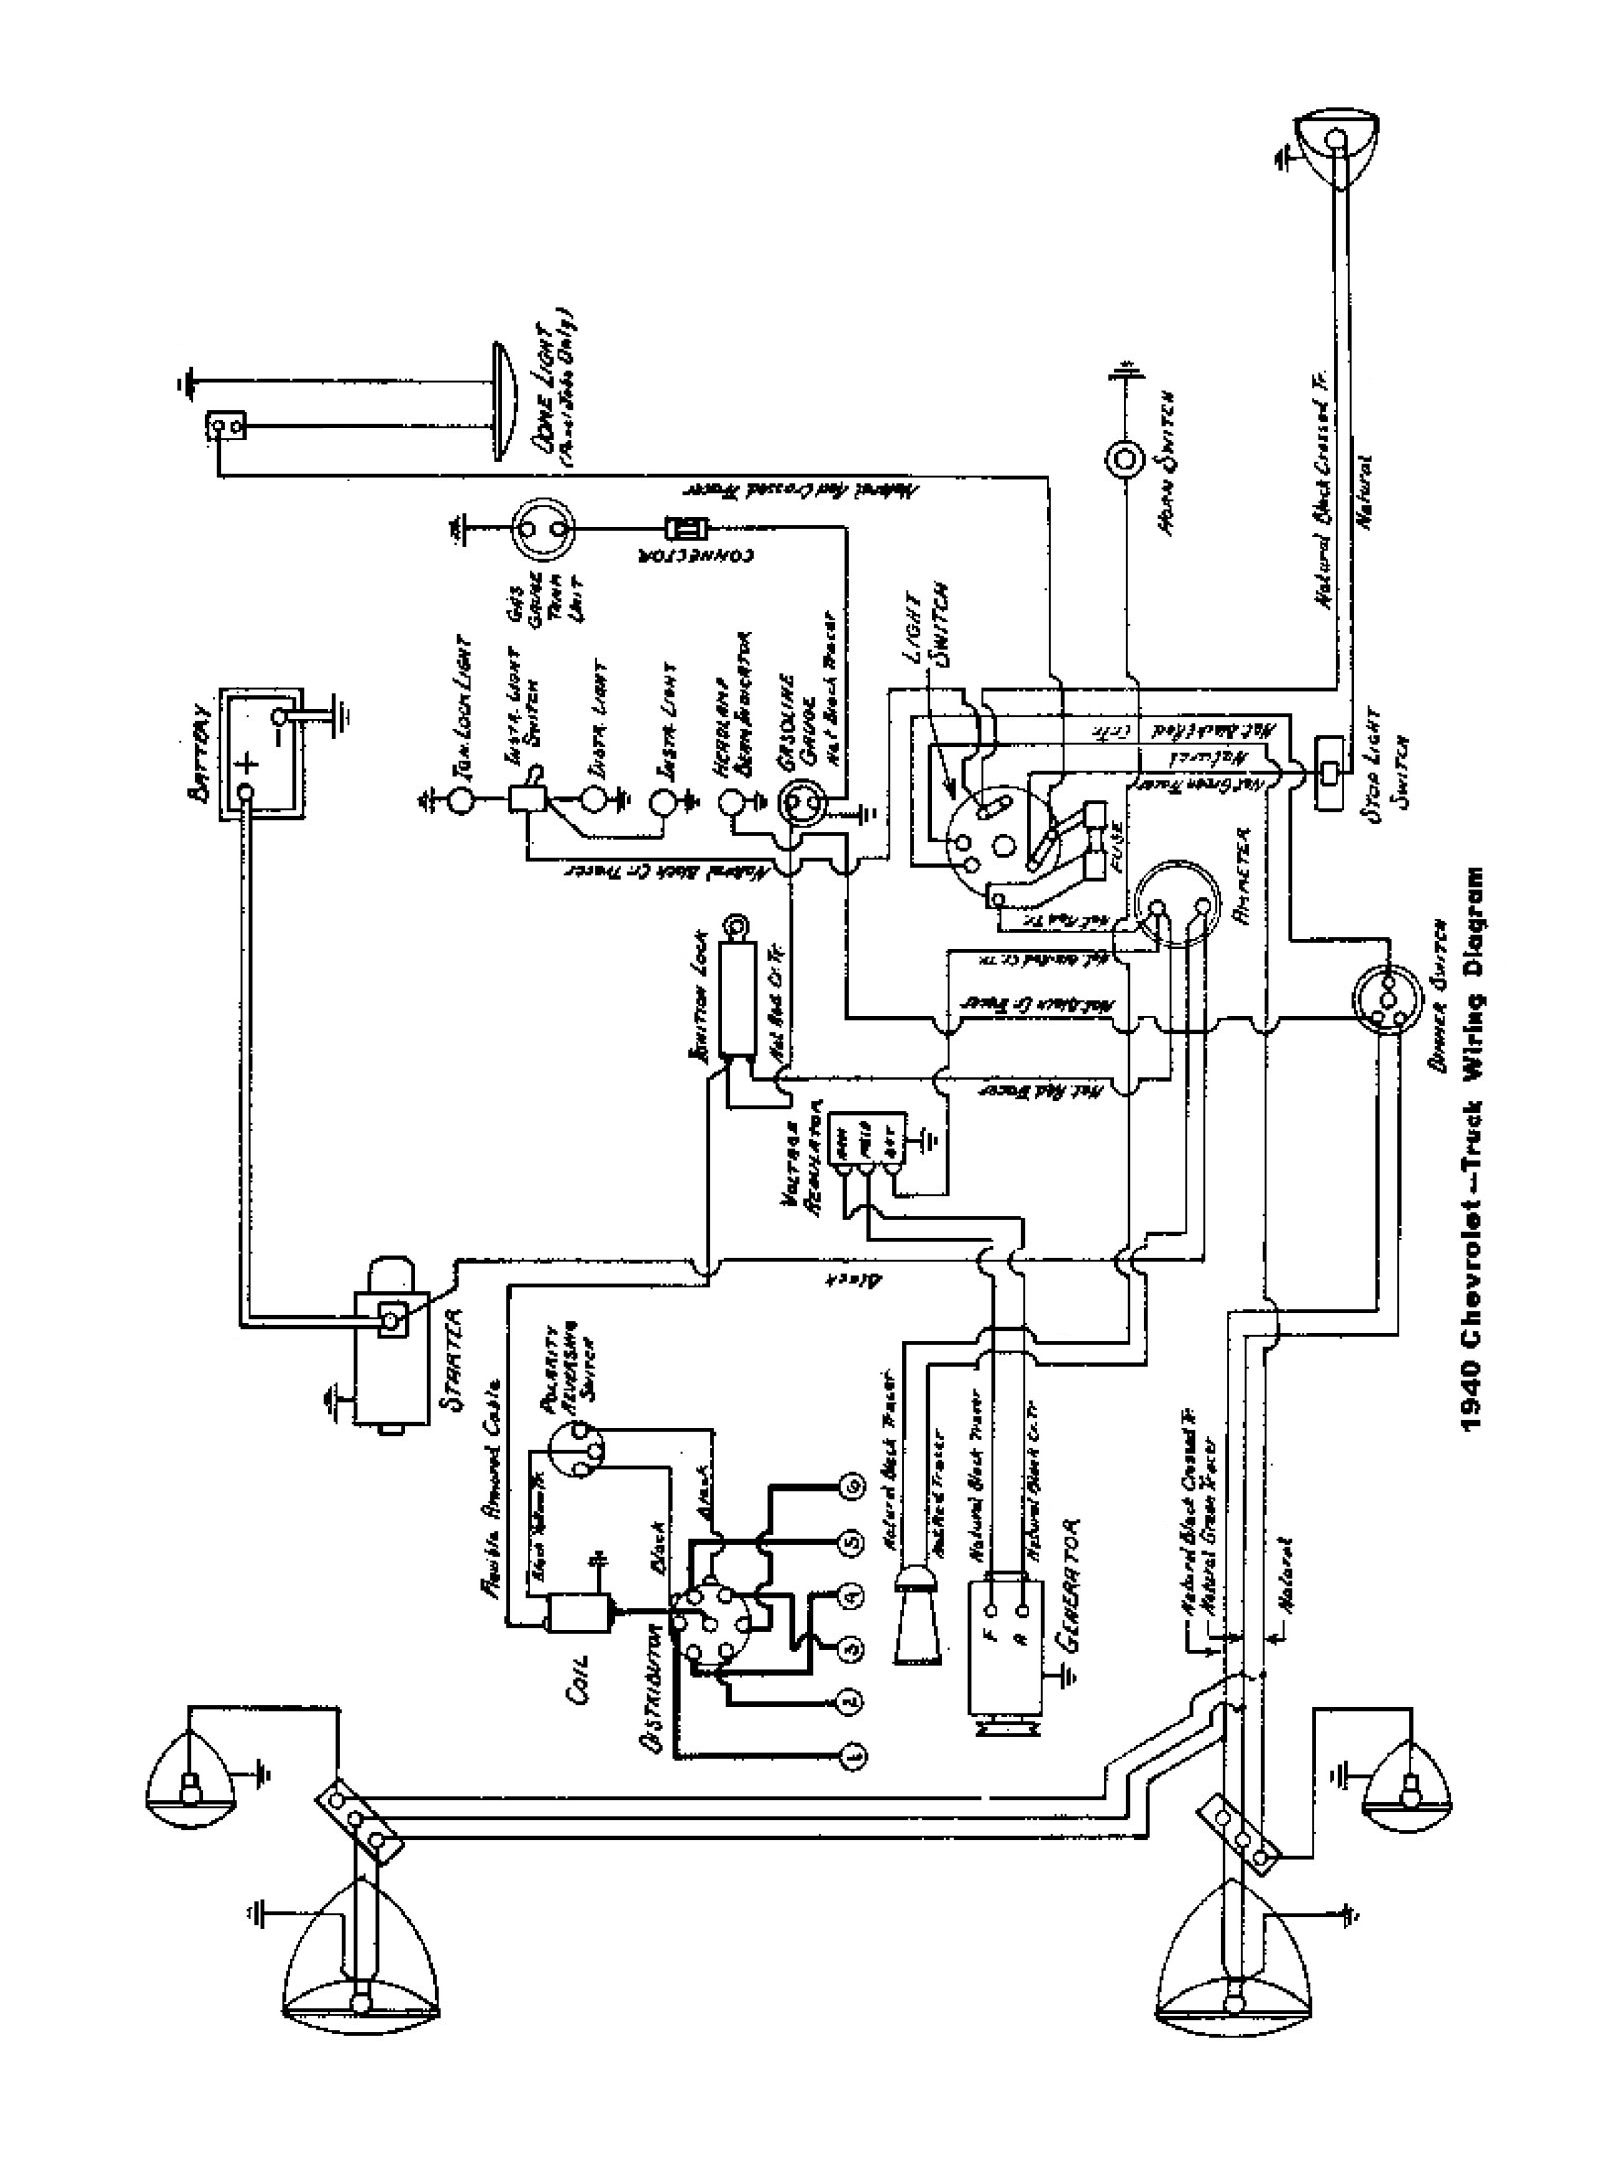 40truck chevy wiring diagrams chevrolet wiring diagram at mifinder.co